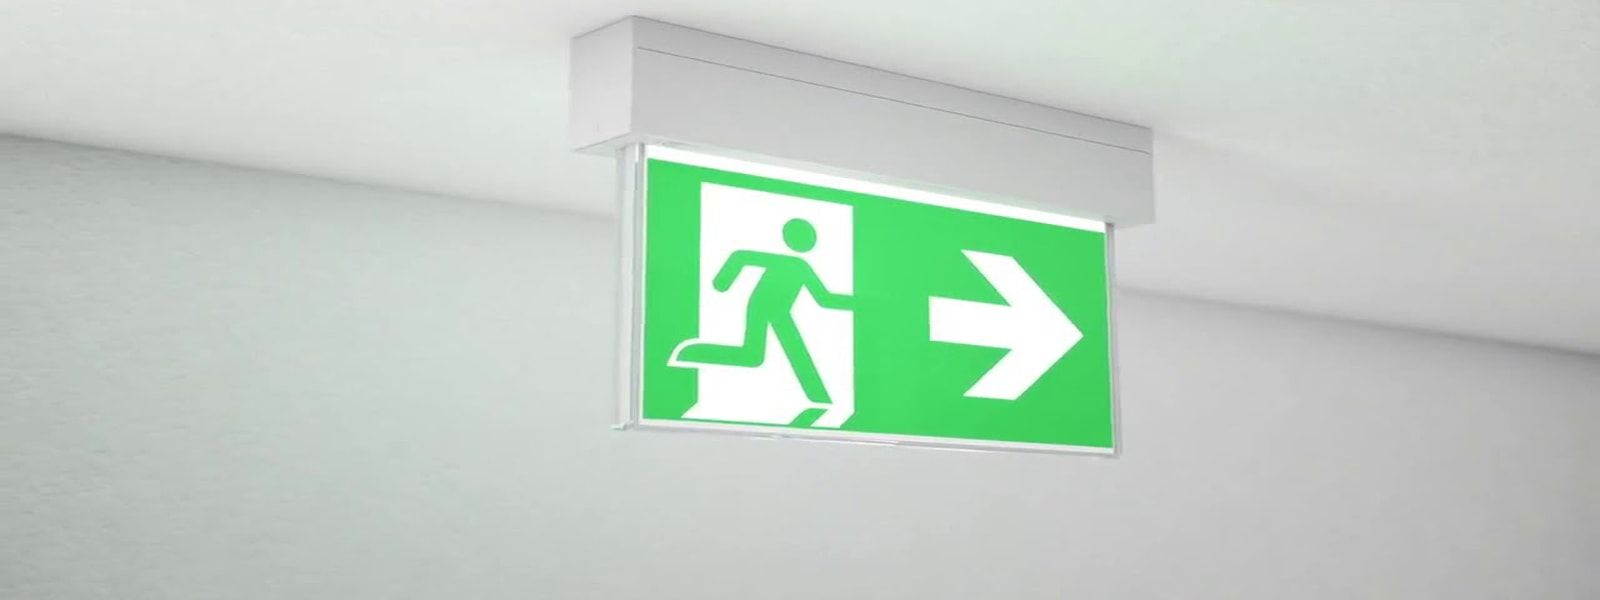 emergency exit light dealers in chennai